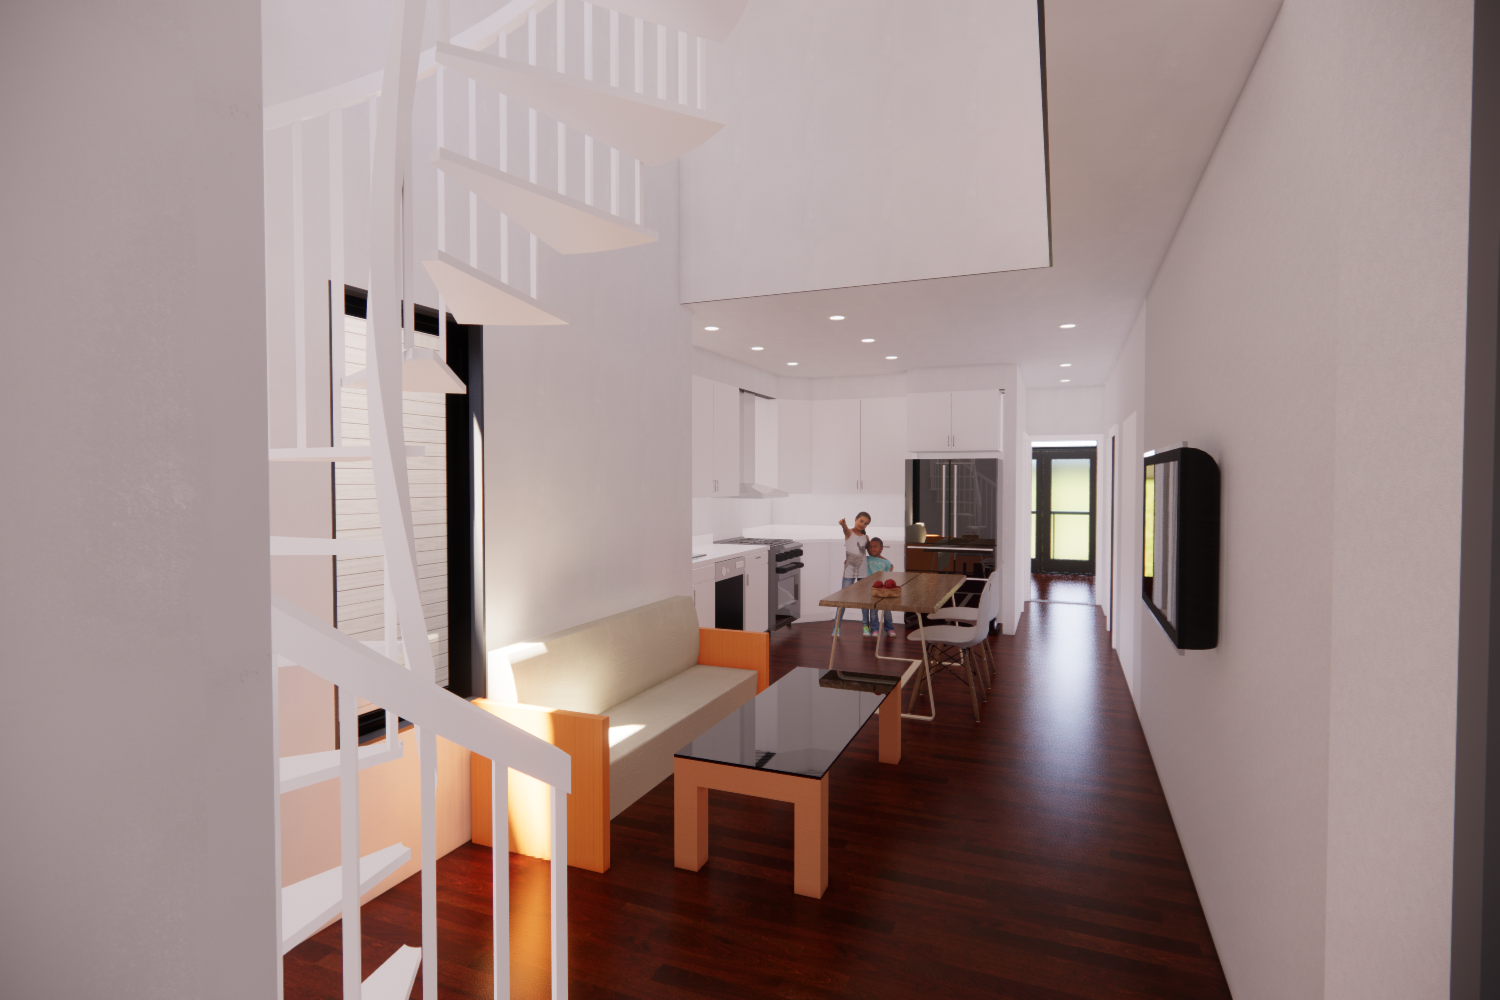 Kensington Multifamily Residential Modern Living Kitchen Design Lighting Study Philadelphia #livingcityarch